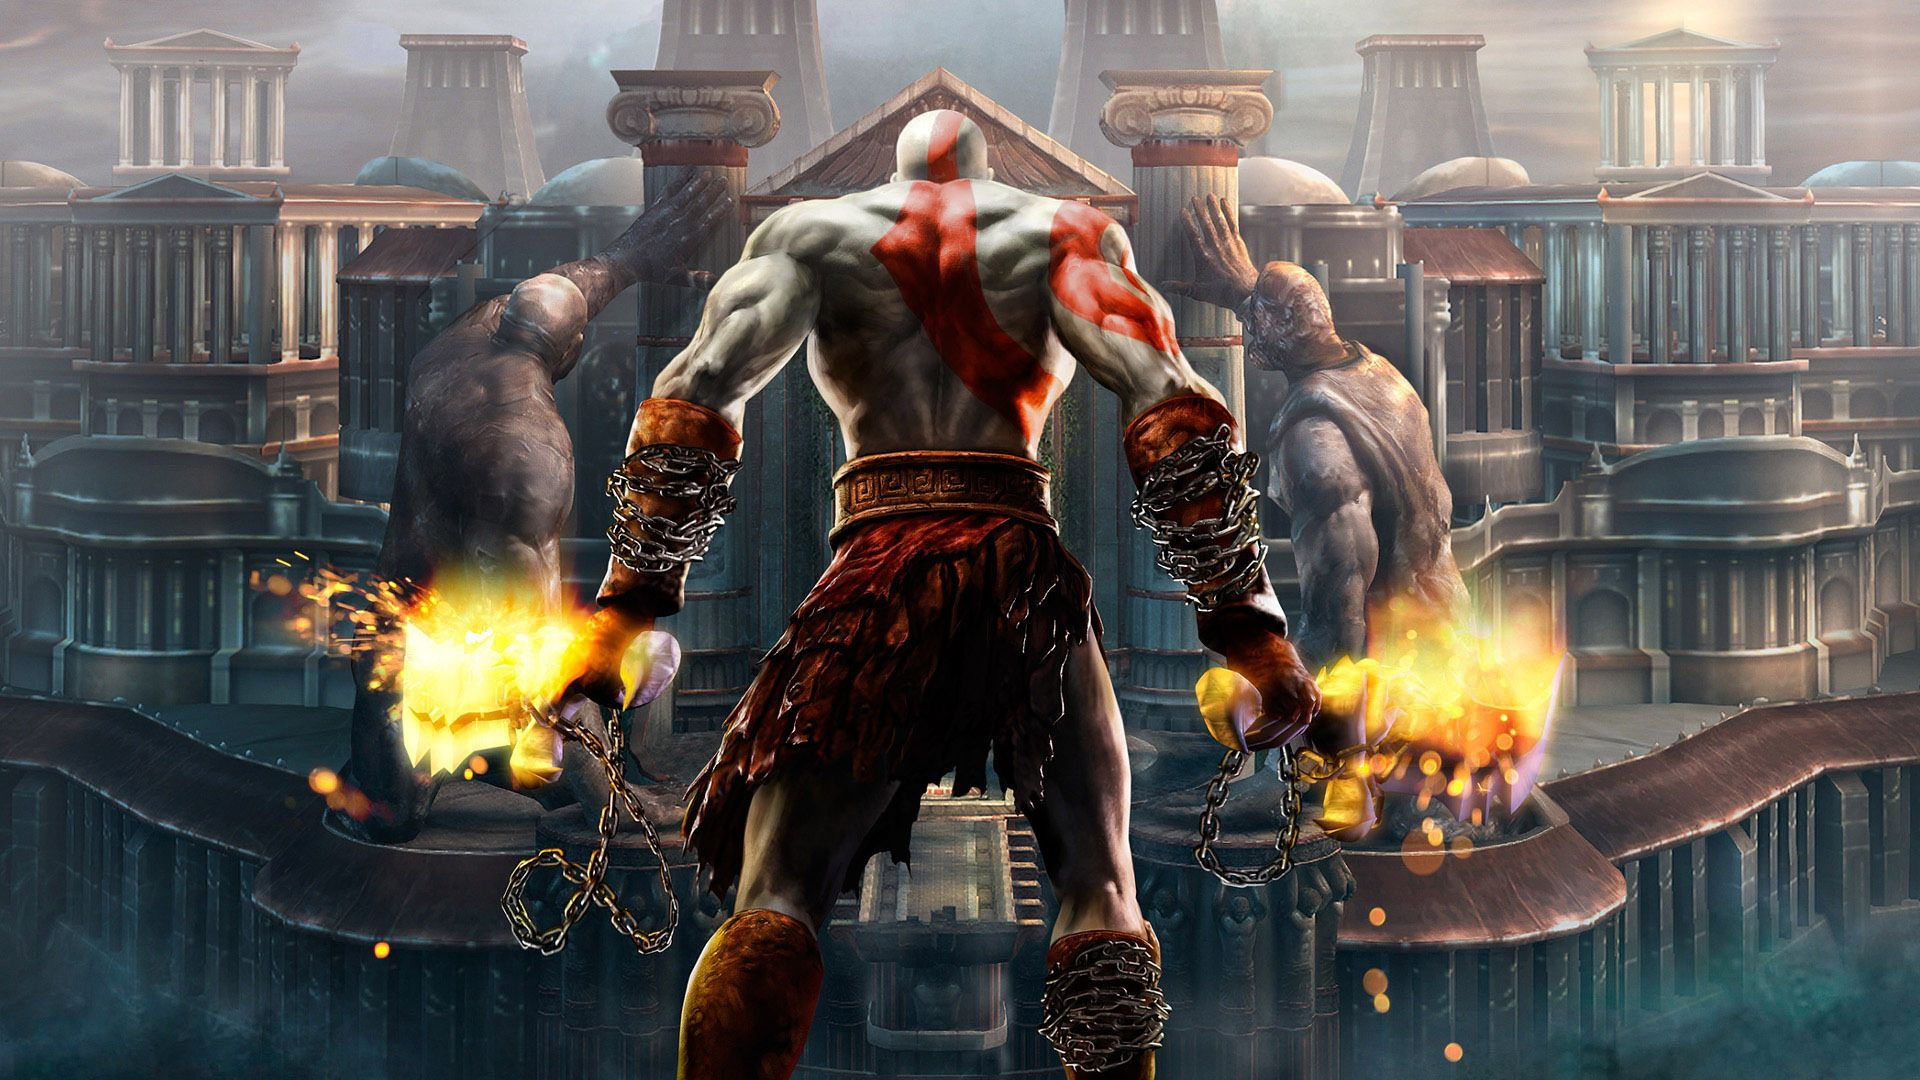 Wallpaper god of war 4k e3 2017 screenshot games - 4k wallpaper of god ...